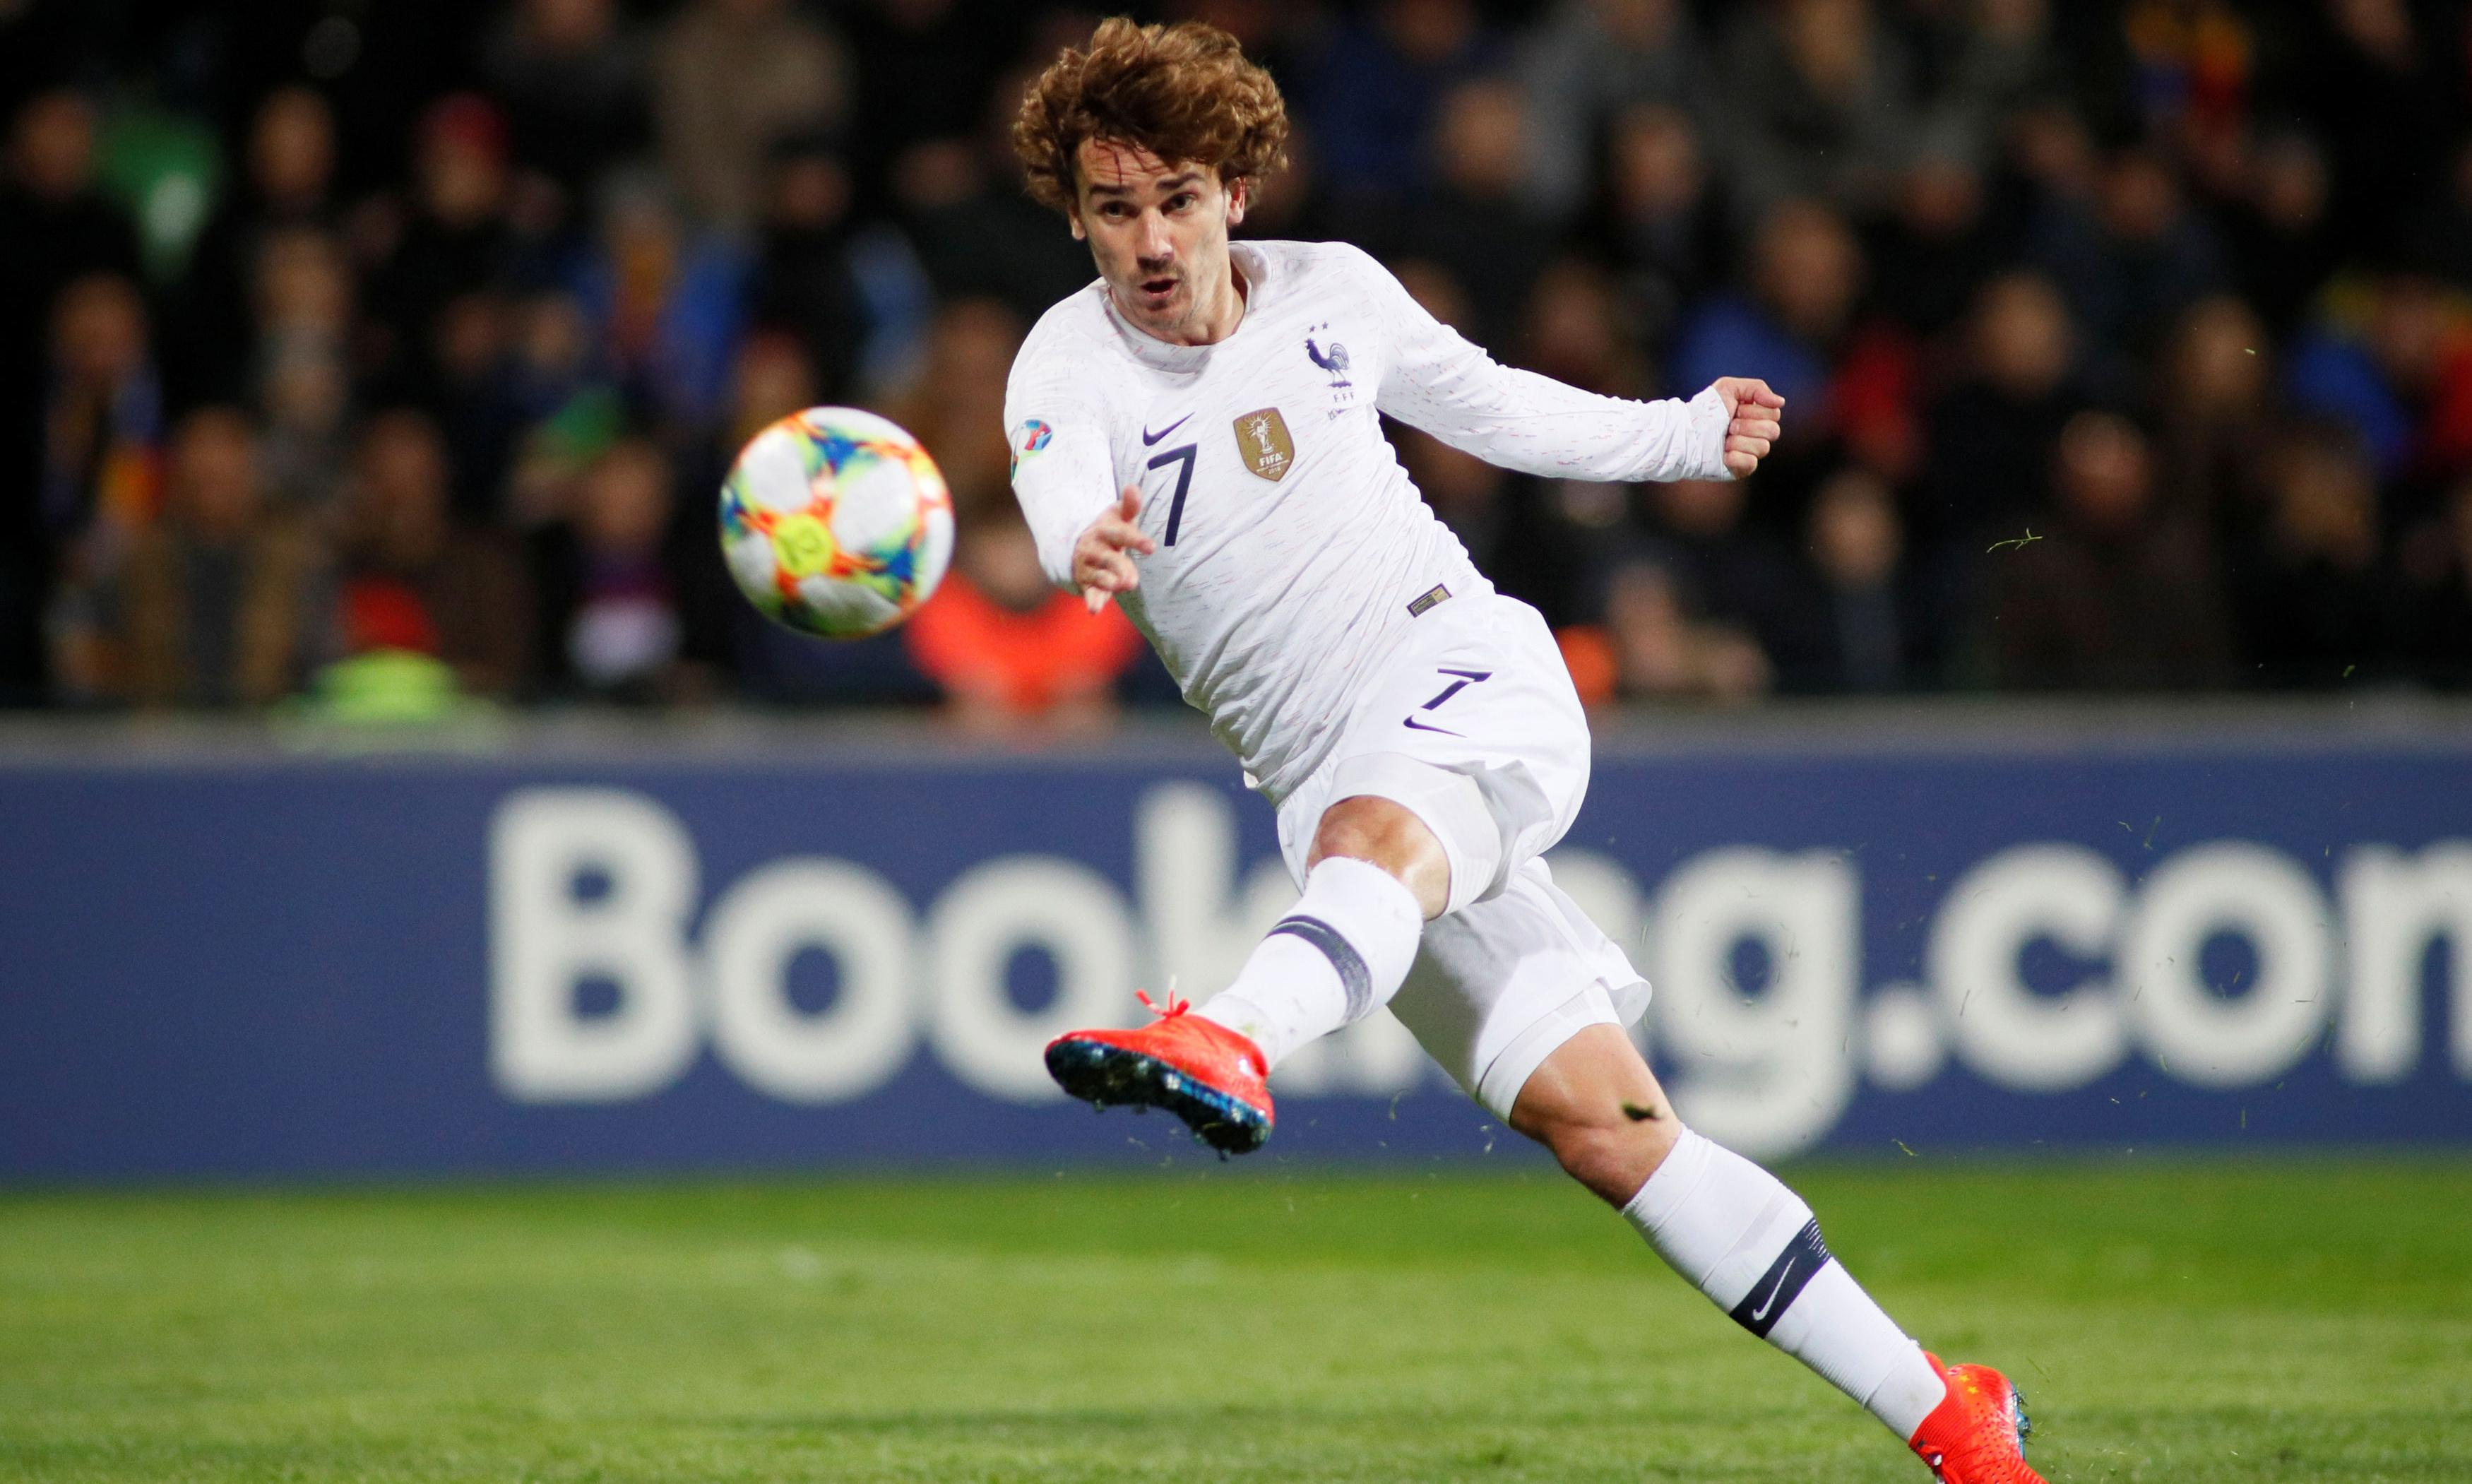 Euro 2020 qualifiers: France turn on the style but Portugal held to draw